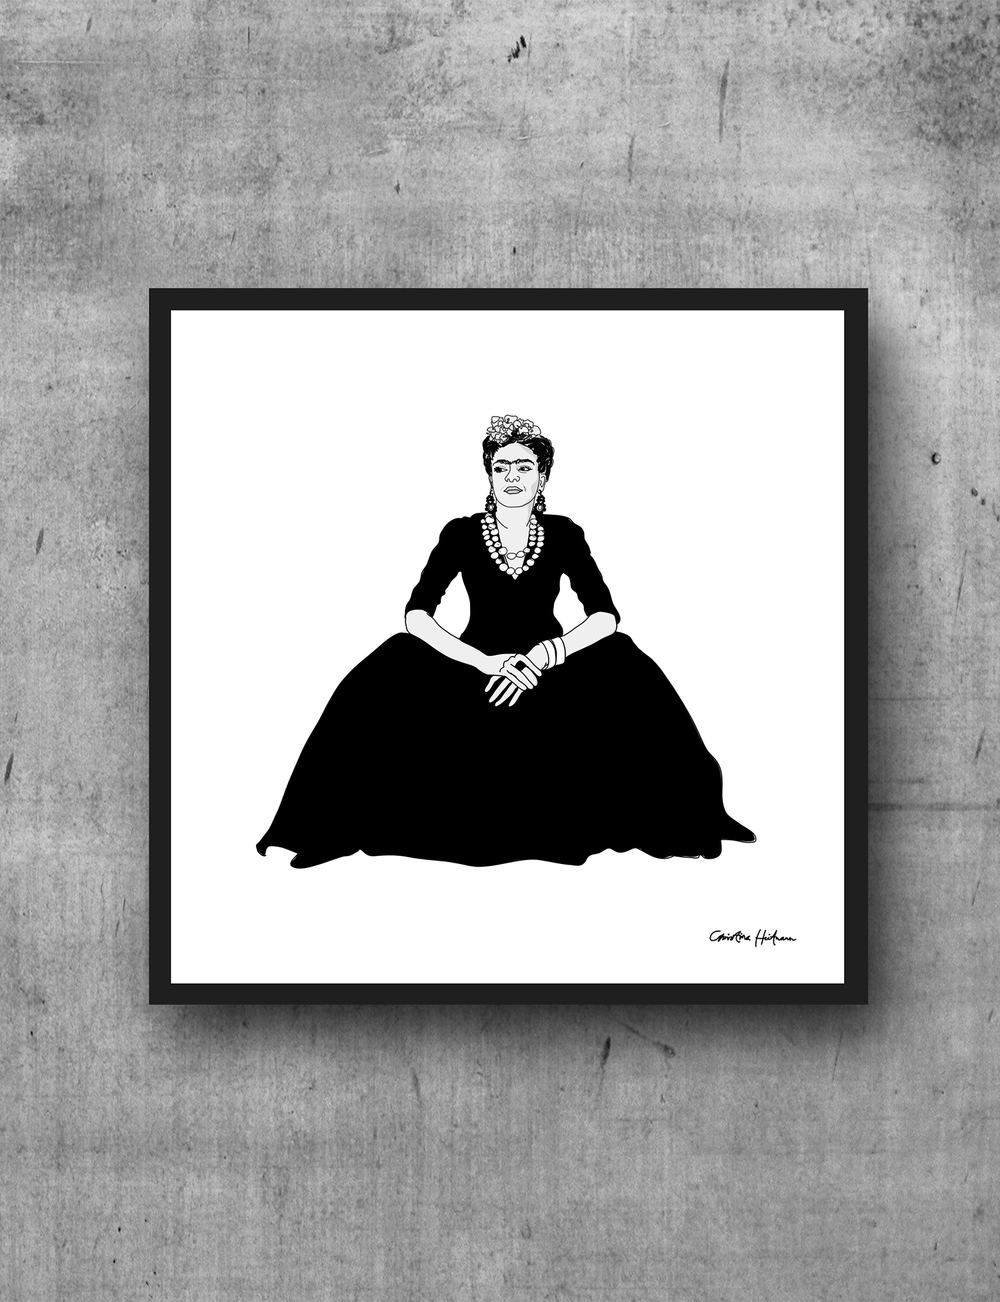 frida-kahlo-frame-christina-heitmann-illustration.jpg